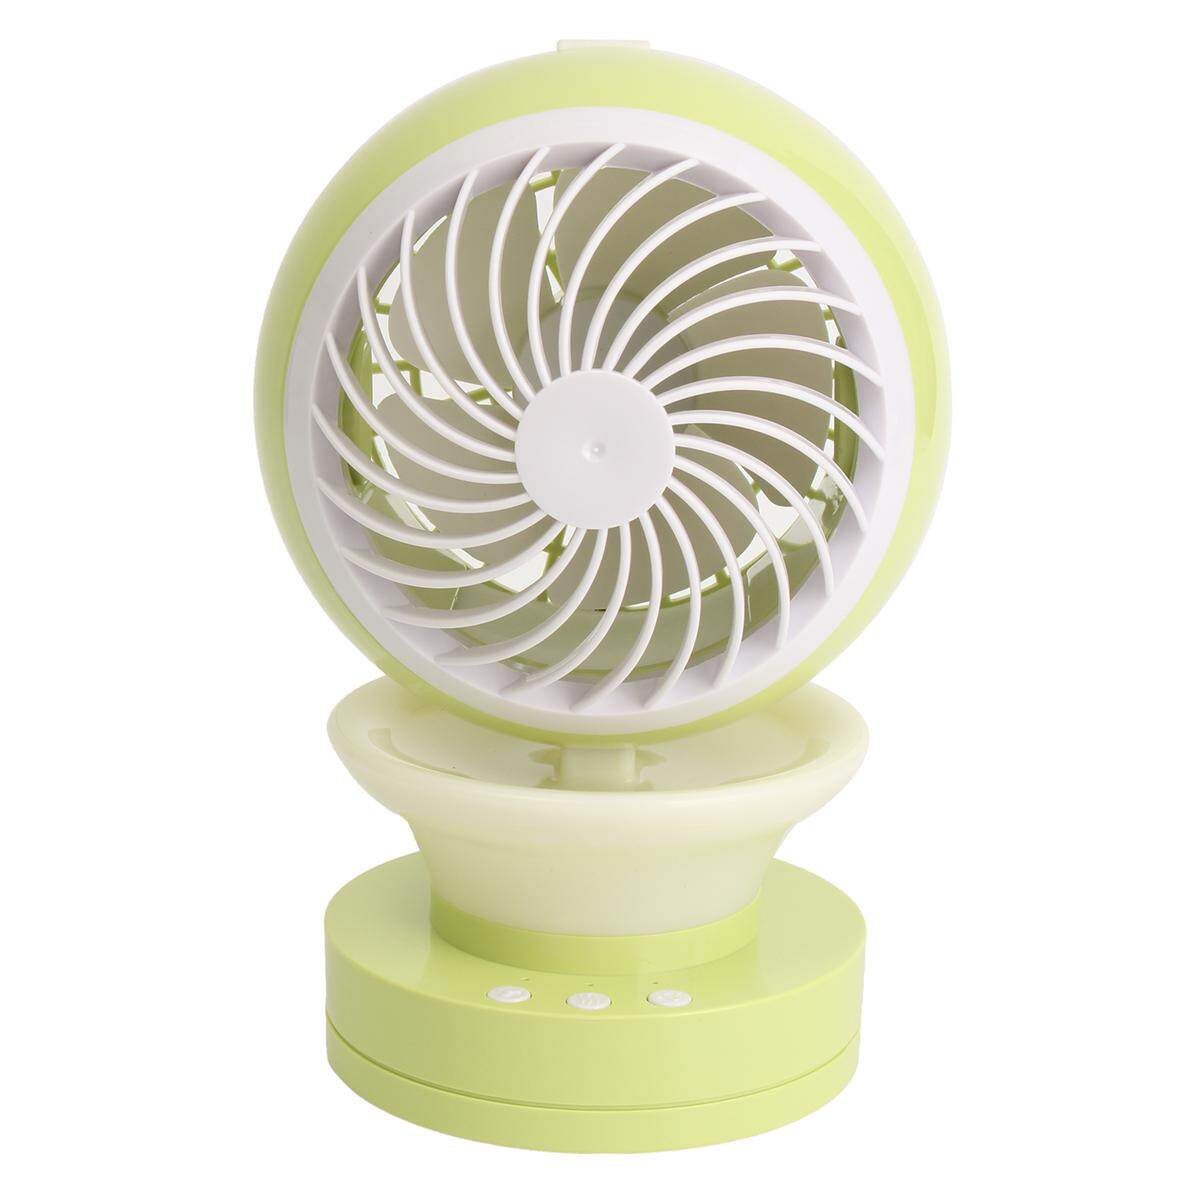 Portable Fan Humidifier USB Charging Pocket Compact Mist Spray Travel Office #green